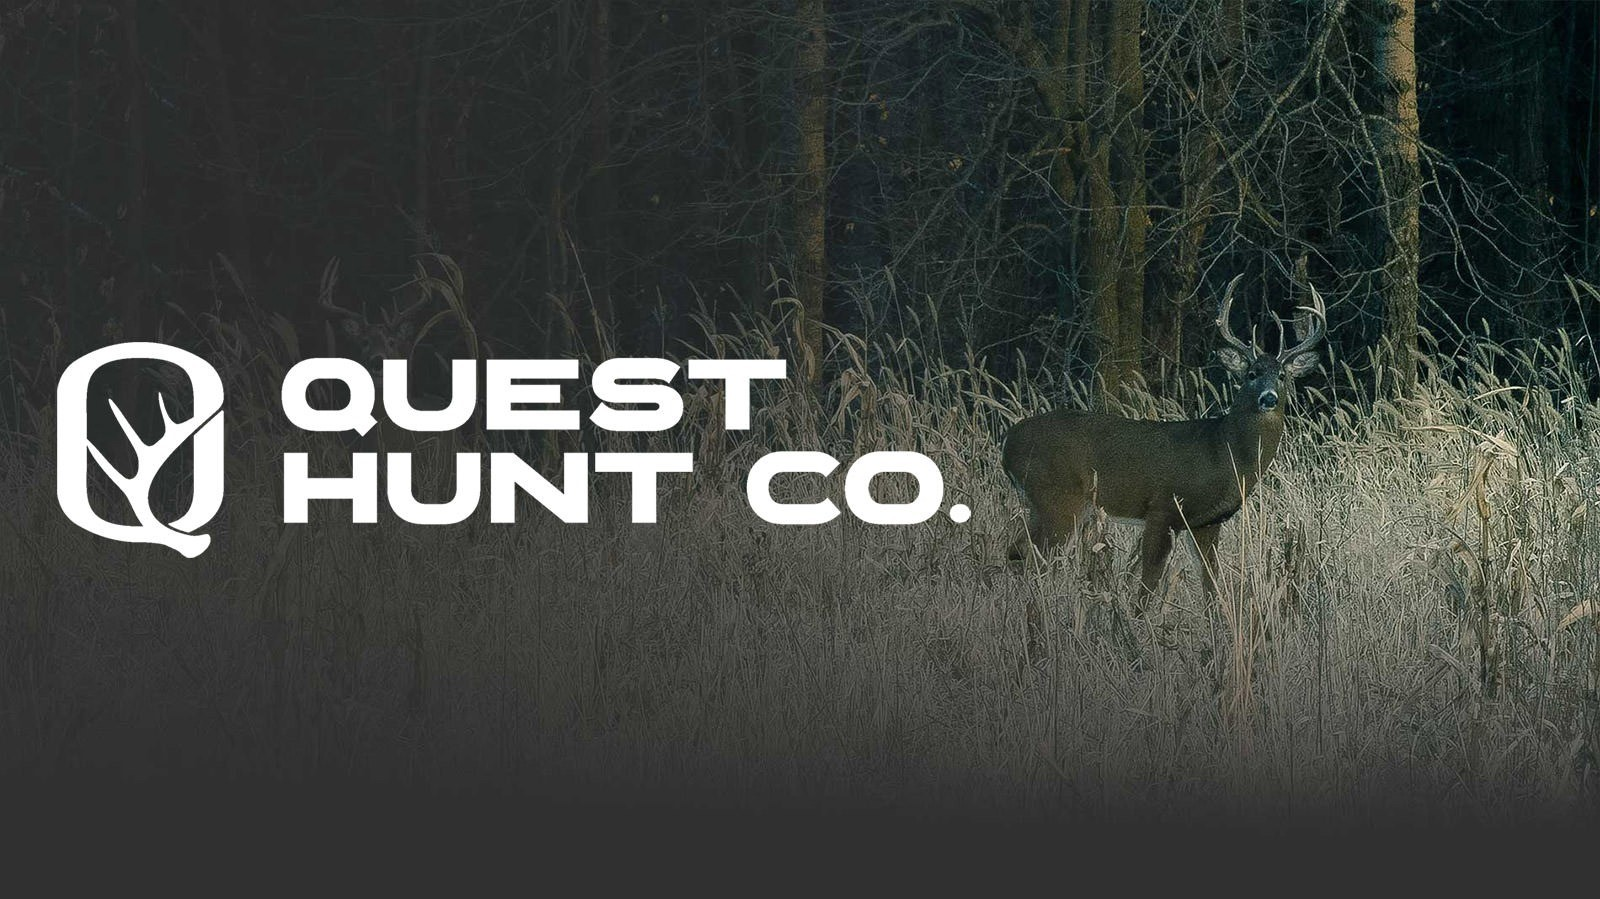 Sponsorship: Quest Hunt Co. Tournament